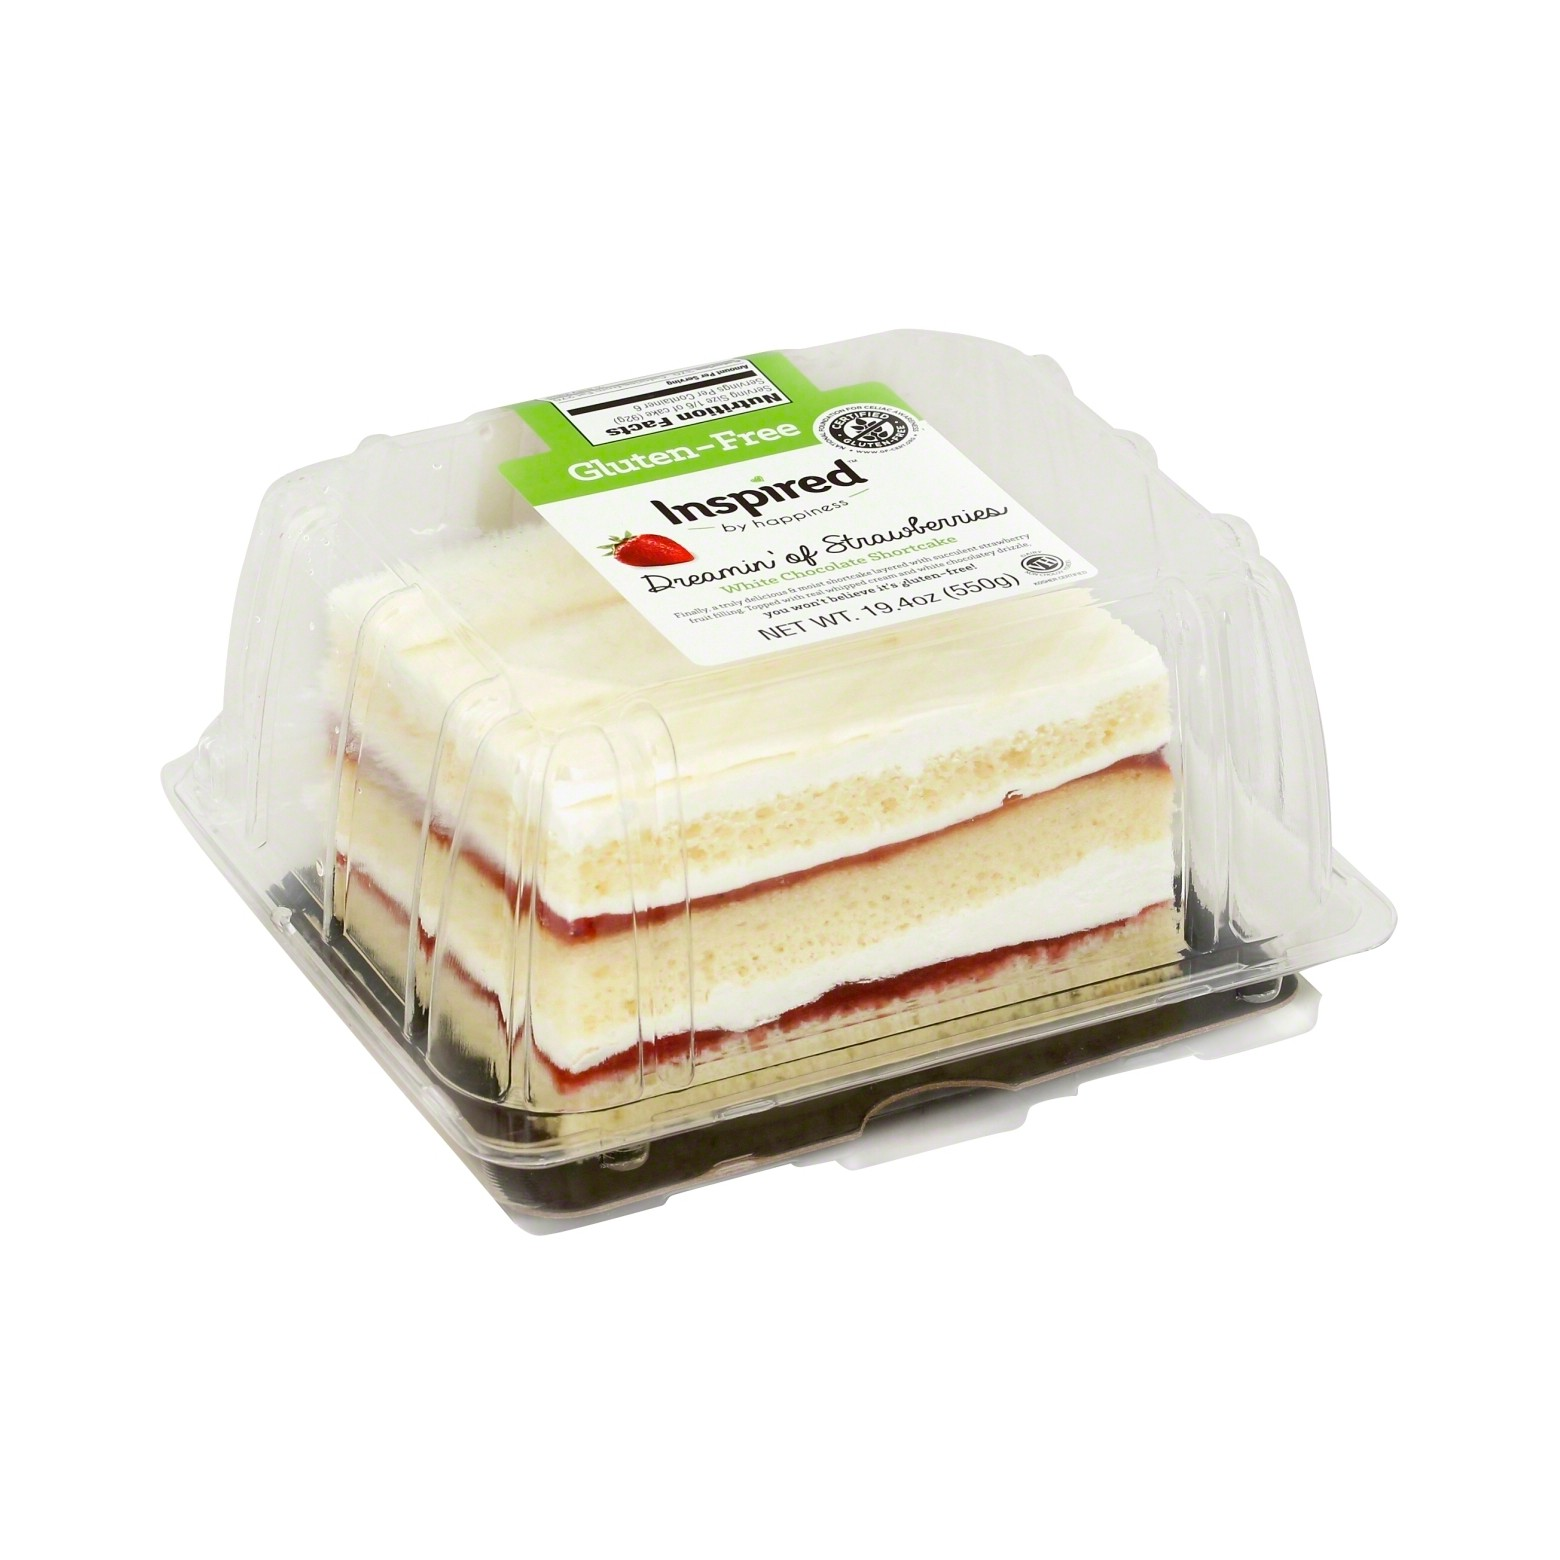 Dessert's served! Fresh, light and oh so yummy. This GF Strawberry White Chocolate Cake is sure to satisfy your sweet tooth.